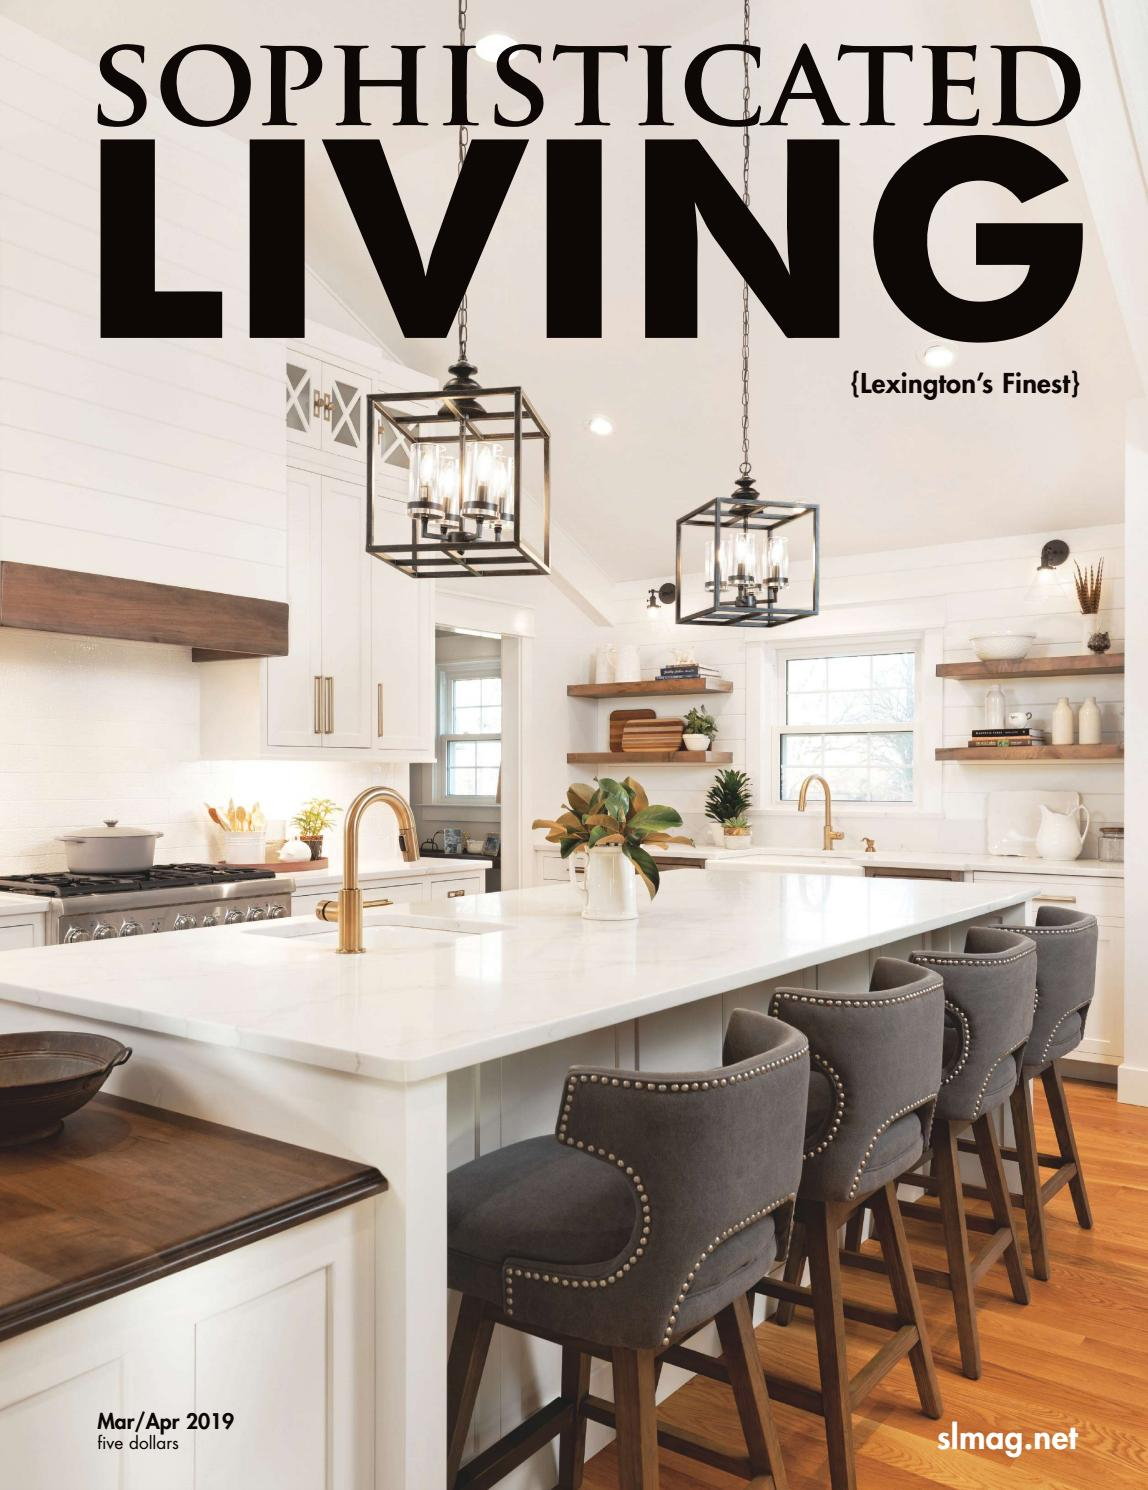 Sophisticated Living Lexington March/April 2019 Pertaining To Coomer Faux Leather Barrel Chairs (View 15 of 15)